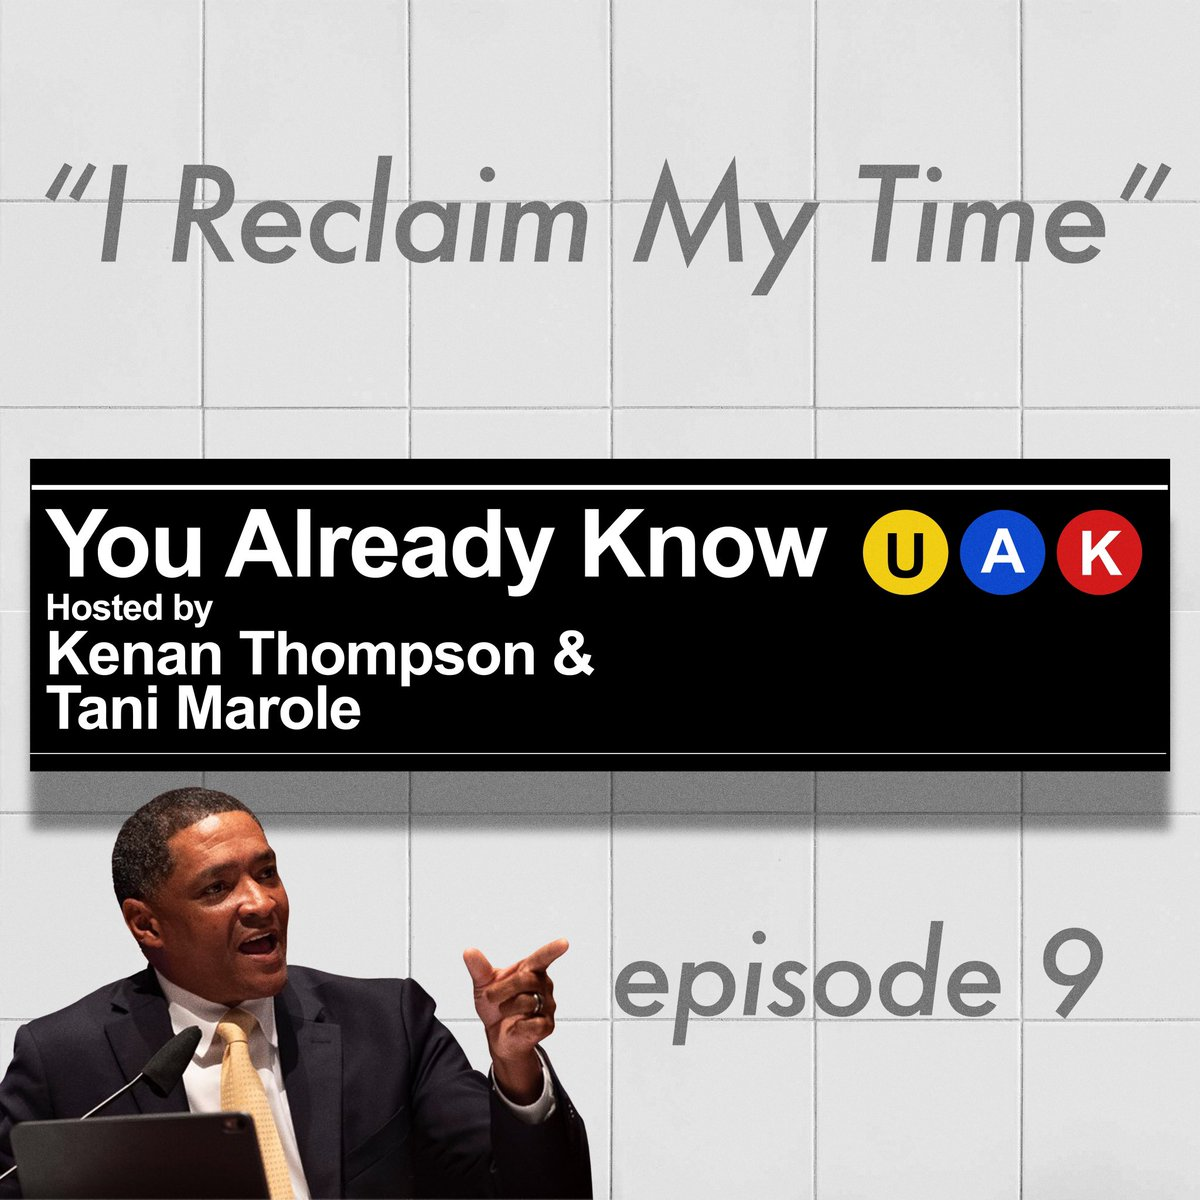 Episode 9 out now!!! Listen on iTunes or hit the link!!! S/o to my Know it Alls!!! Mature audiences only!! @uakpodcast @TaniMarole anchor.fm/s/214934e8/pod…